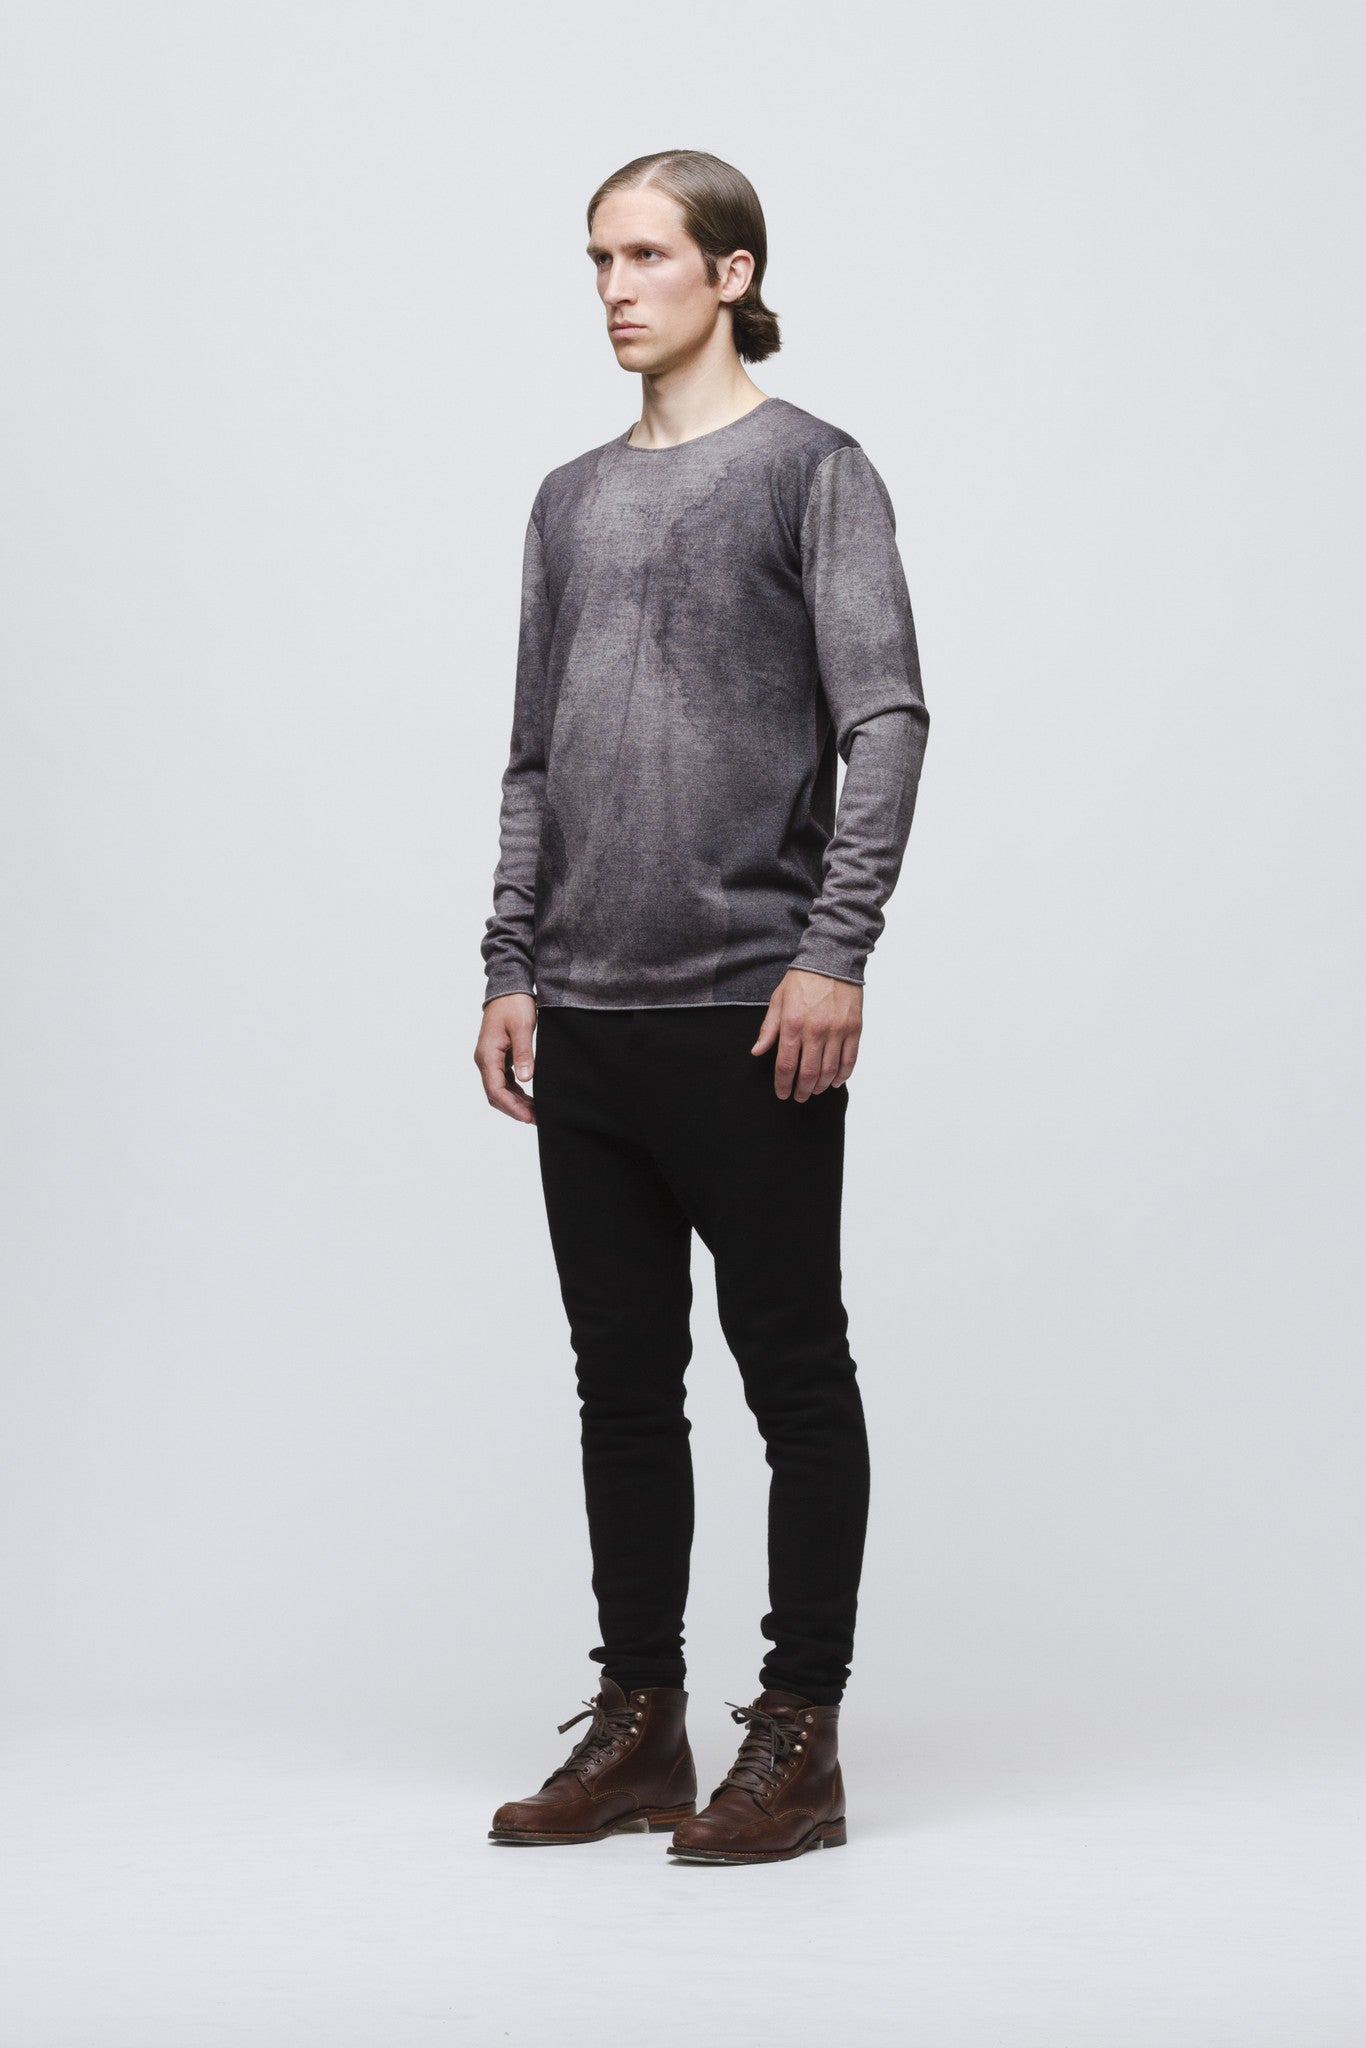 ASK // HERRE // 100 % MERINO WOOL